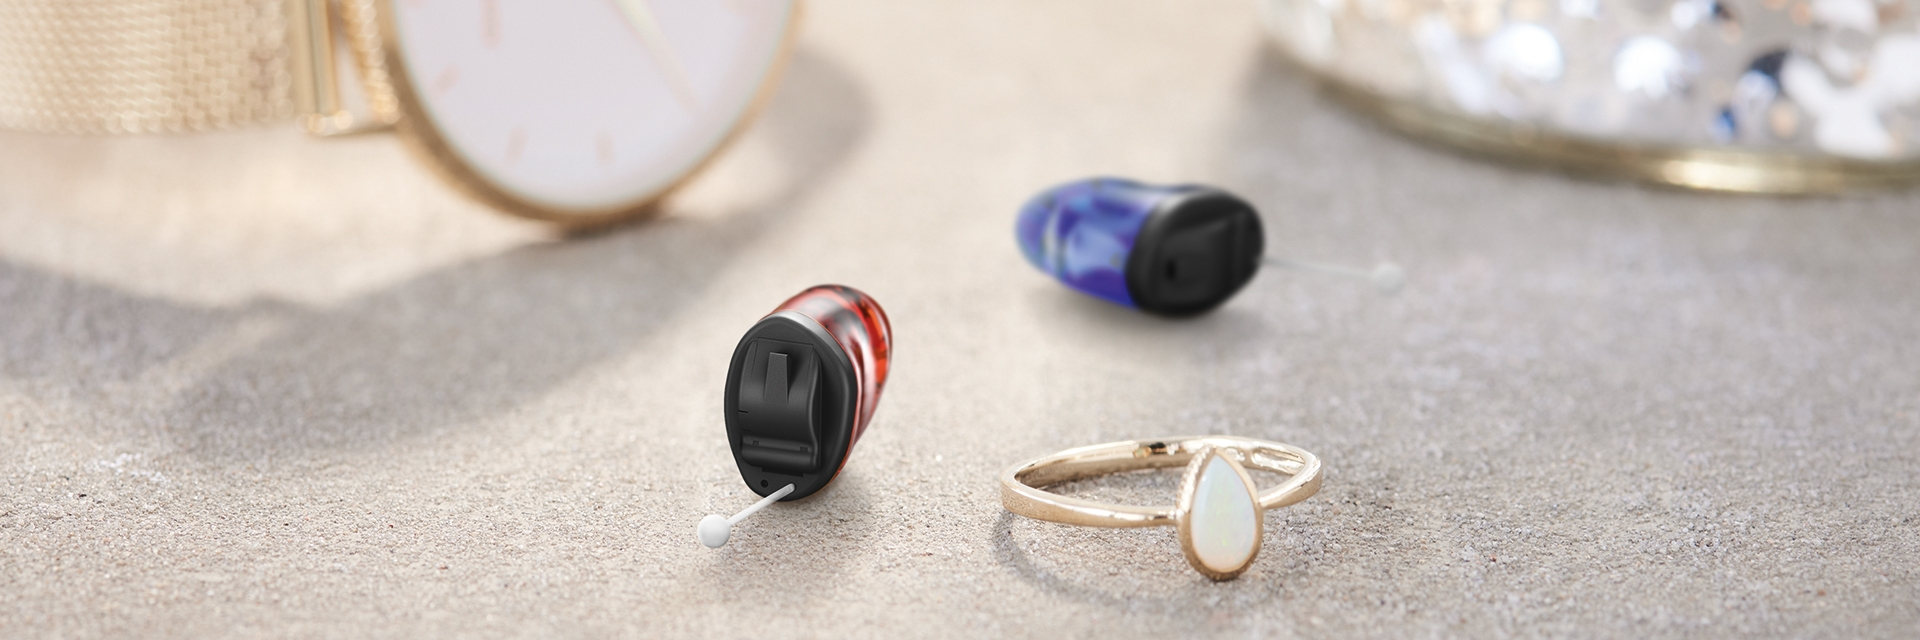 Hearing aids INSIO